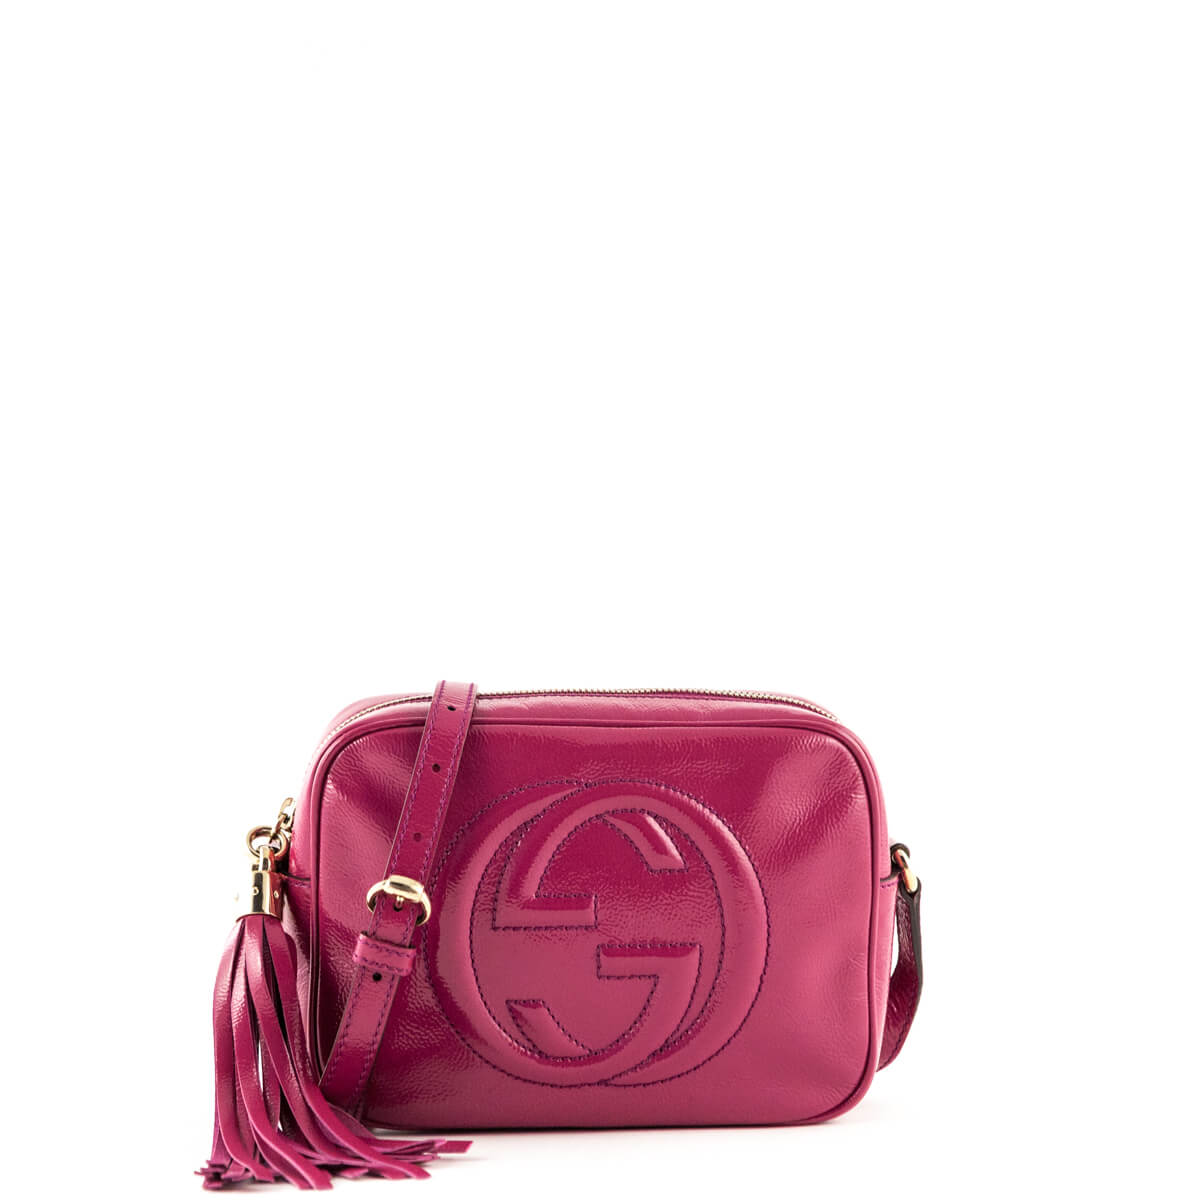 183488fbda904 Gucci Pink Patent Soho Disco - LOVE that BAG - Preowned Authentic Designer  Handbags ...